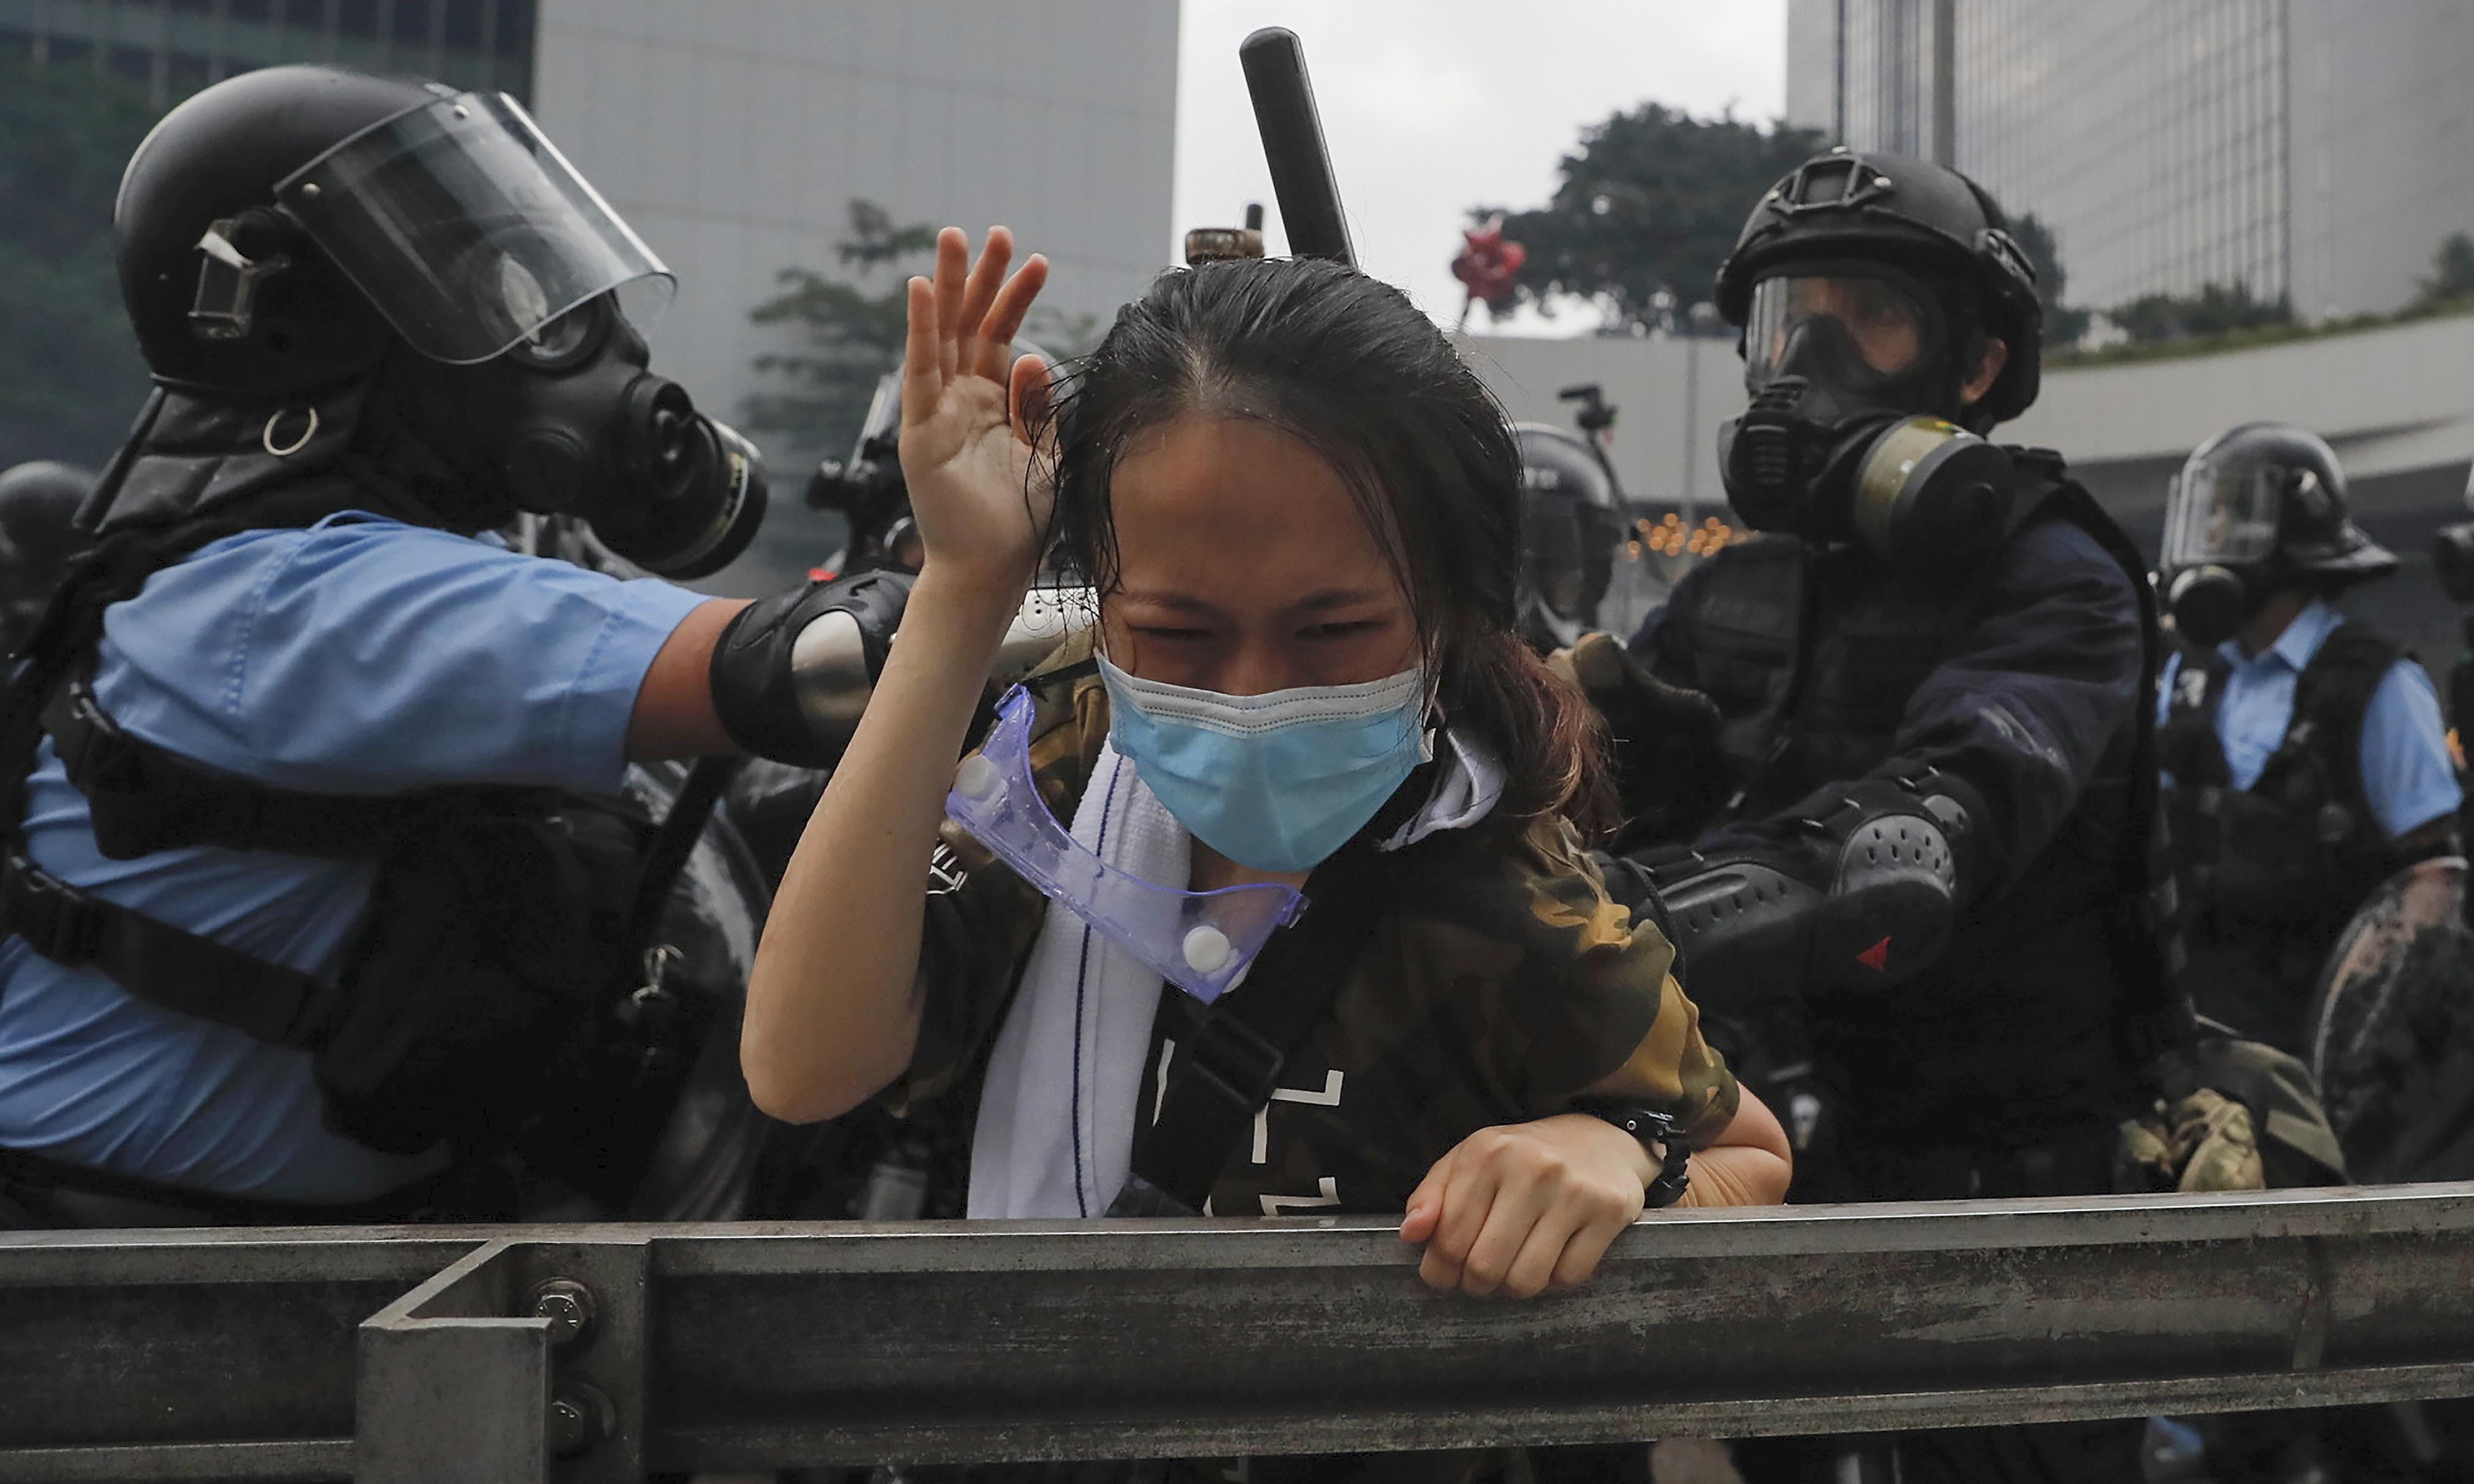 Police use rubber bullets as Hong Kong protesters vow 'no retreat'